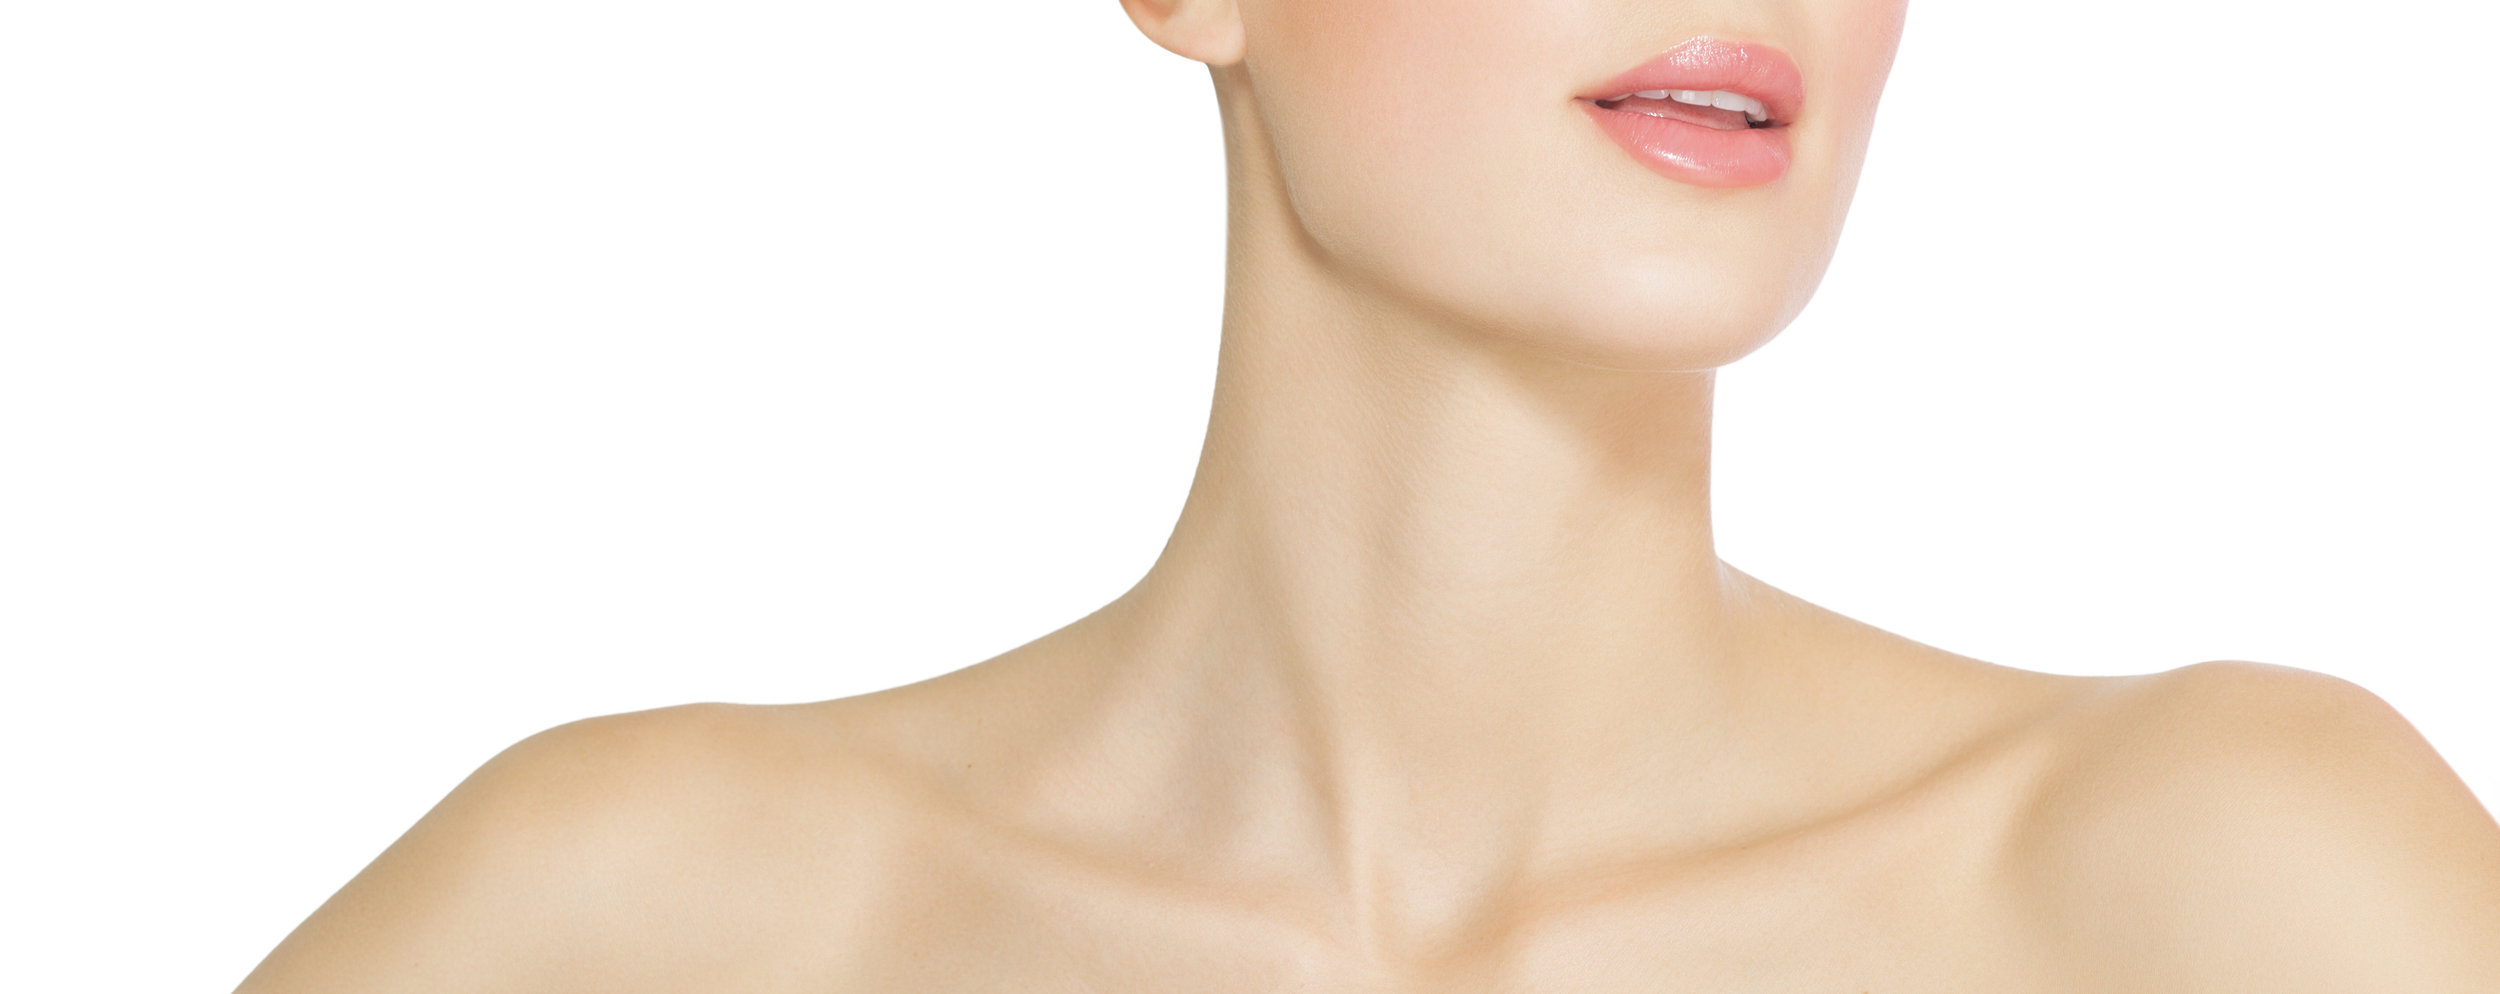 Neck & Decollate - Package of 6Regular price $1400Promo price $699 Book now & Get + 1 Neck Radio Frequency Conturing Procedure ( value $150)